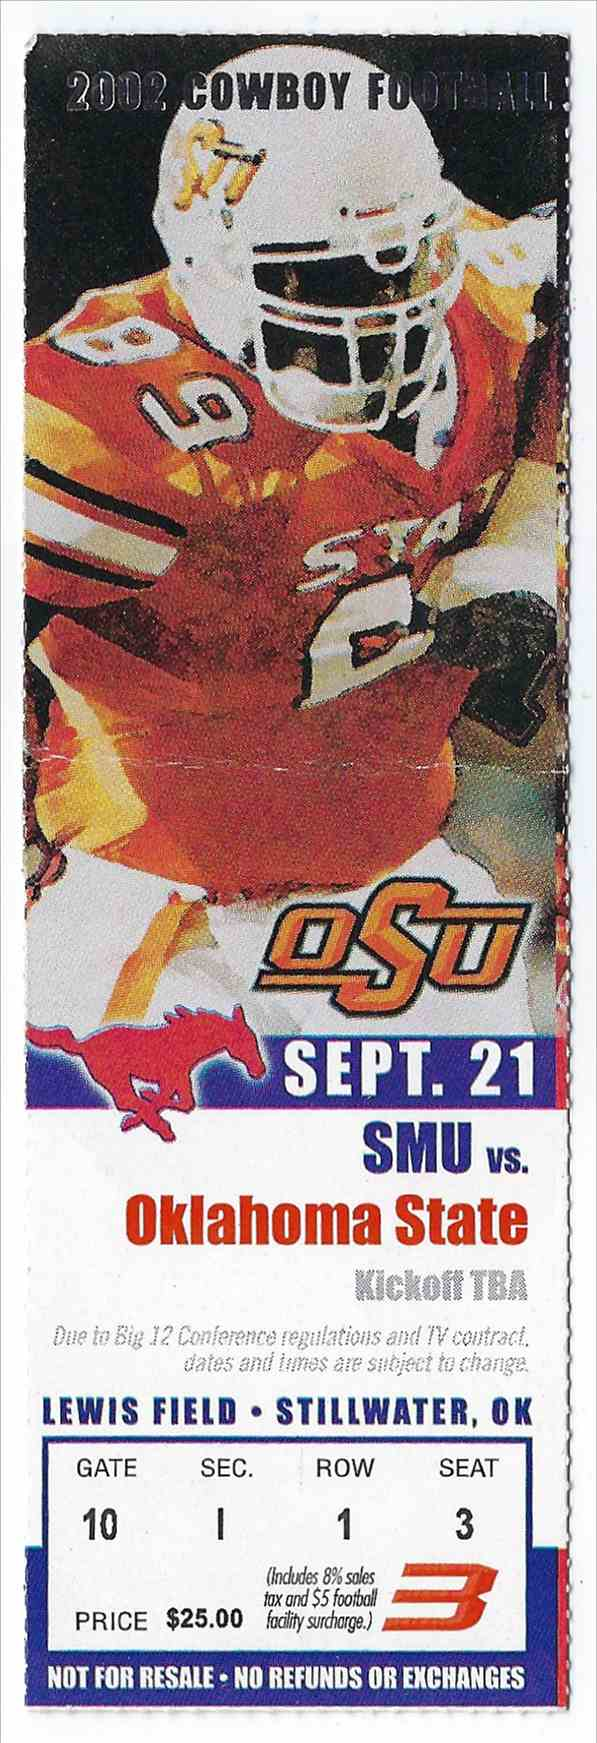 2002 College Football Ticket Stub Smu Vs Oklahoma State card front image